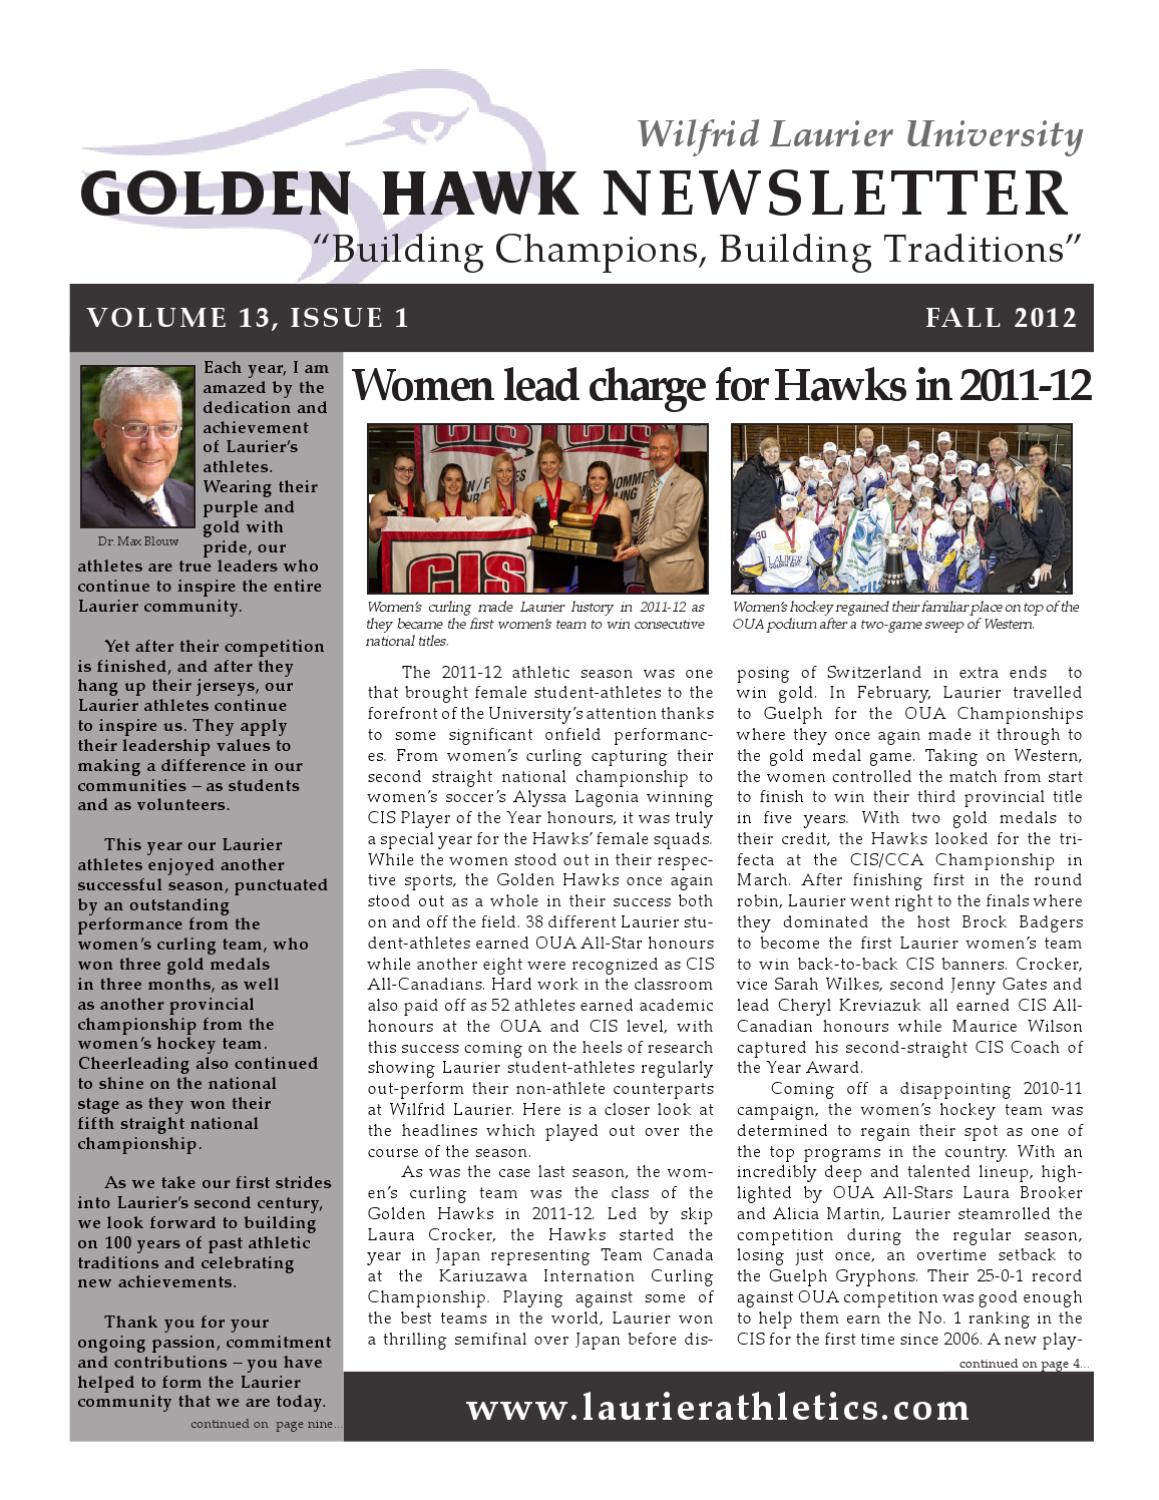 Fall 2012 Golden Hawk Newsletter by Wilfrid Laurier\'s Department of ...